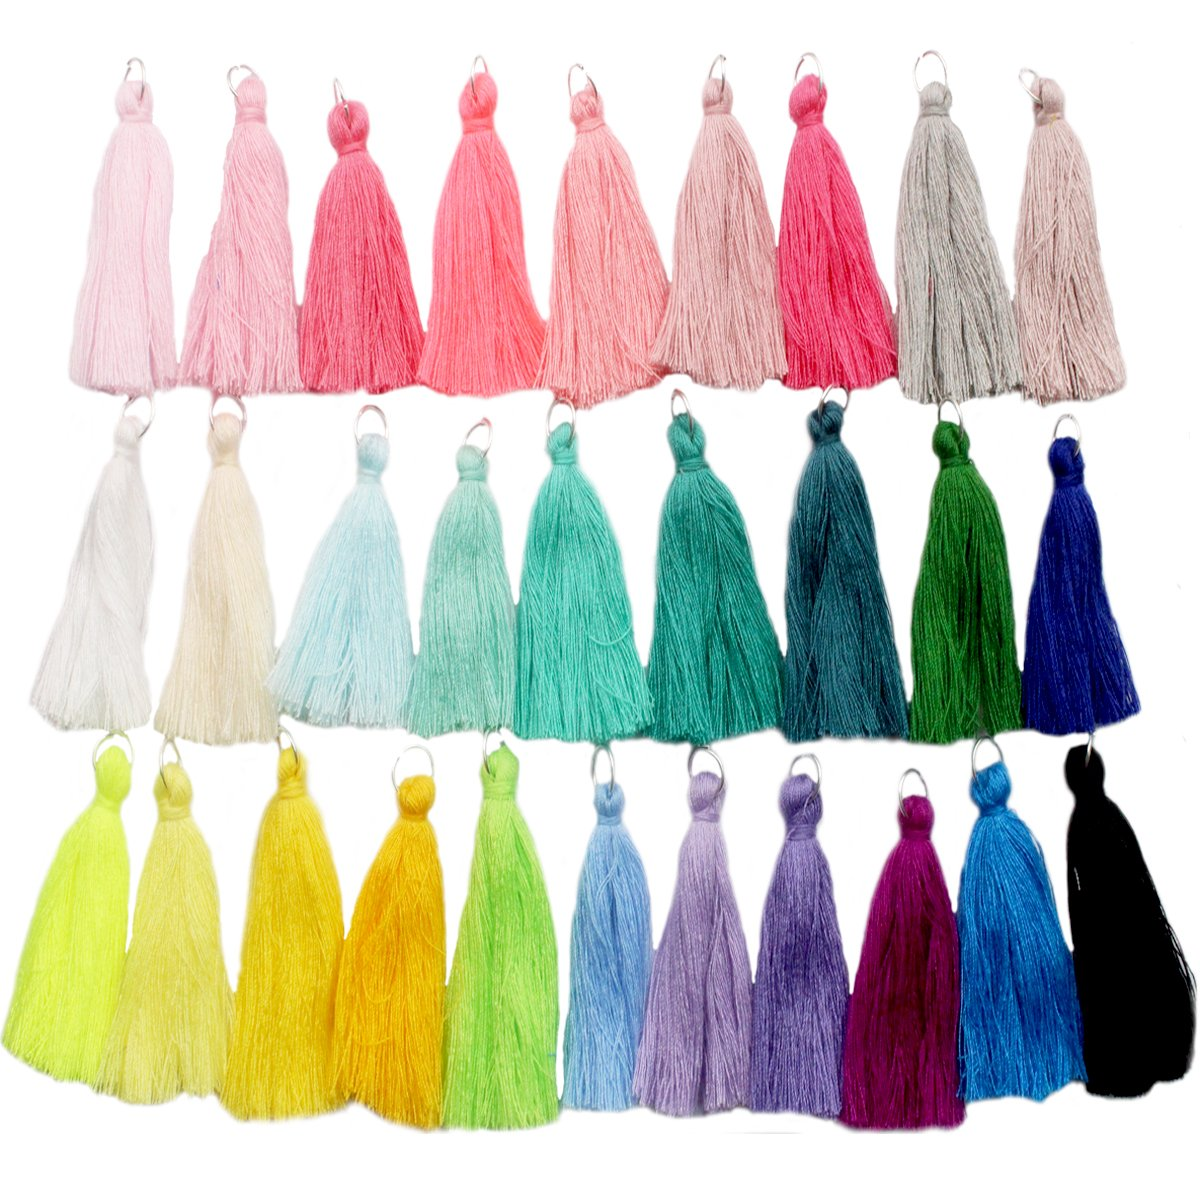 29pcs of 2 Inch Mini Tassels DIY Cotton Thread Tassels Craft Supplies Jewelry Tassels Chunky Tassel Fringe Trim DealsEachDay